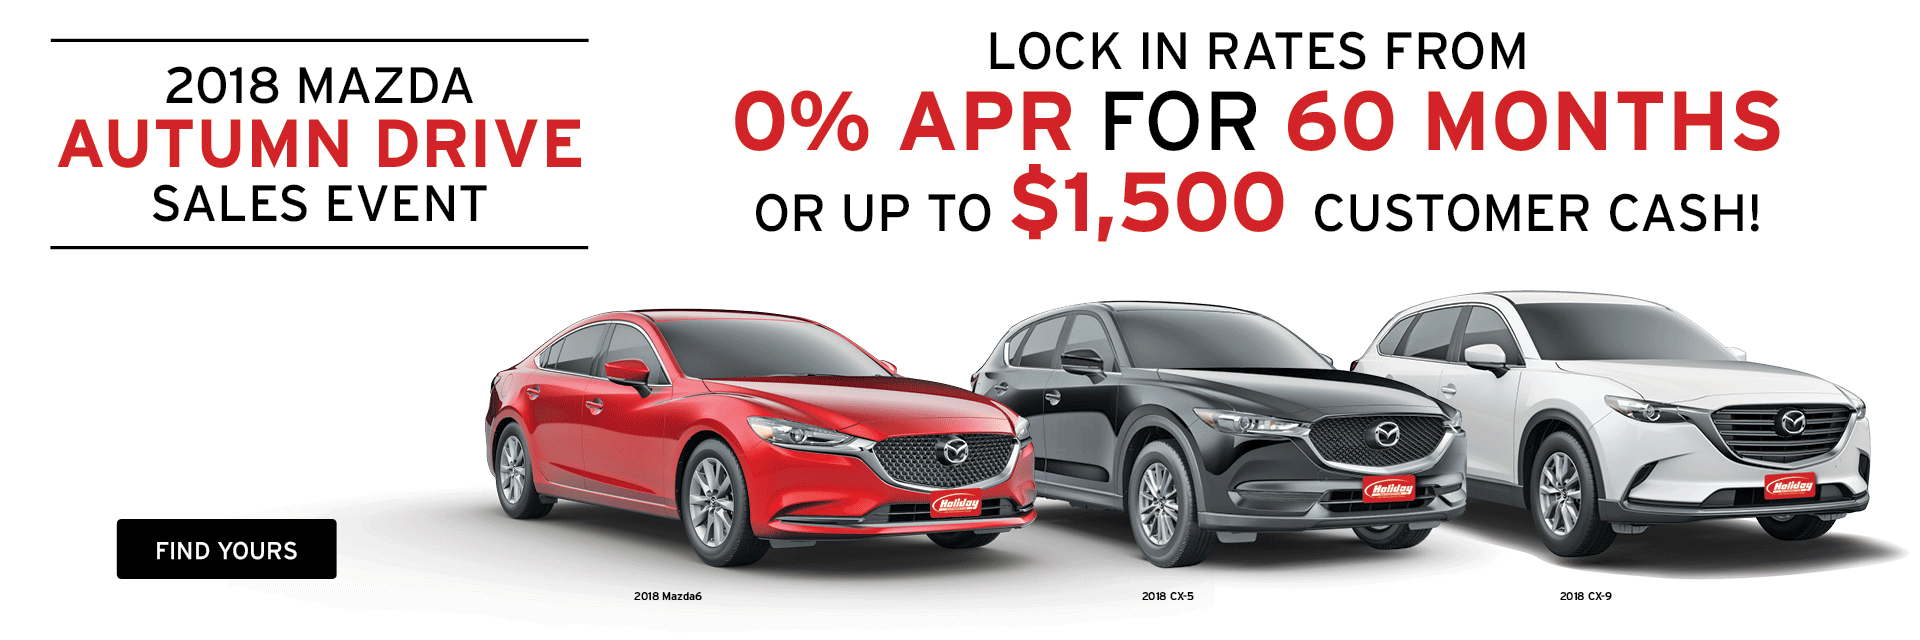 Great offers on Mazda at Holiday Mazda in Fond du Lac, WI